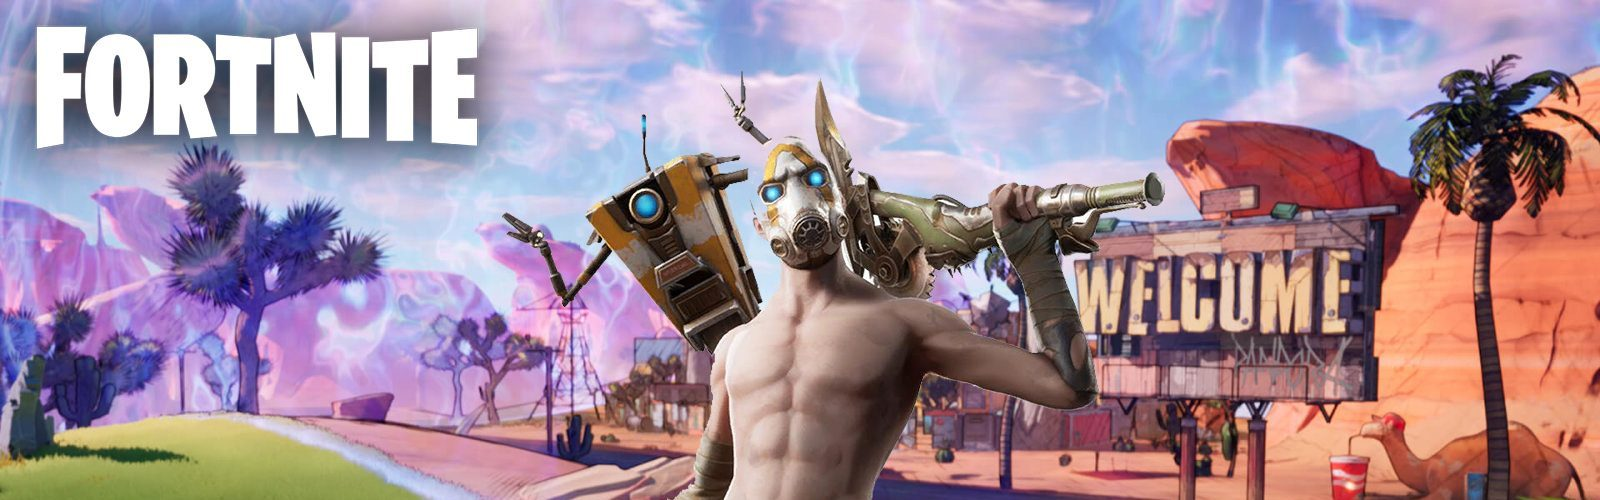 Fortnite - Psycho Bundle (DLC) Epic Games Key UNITED STATES